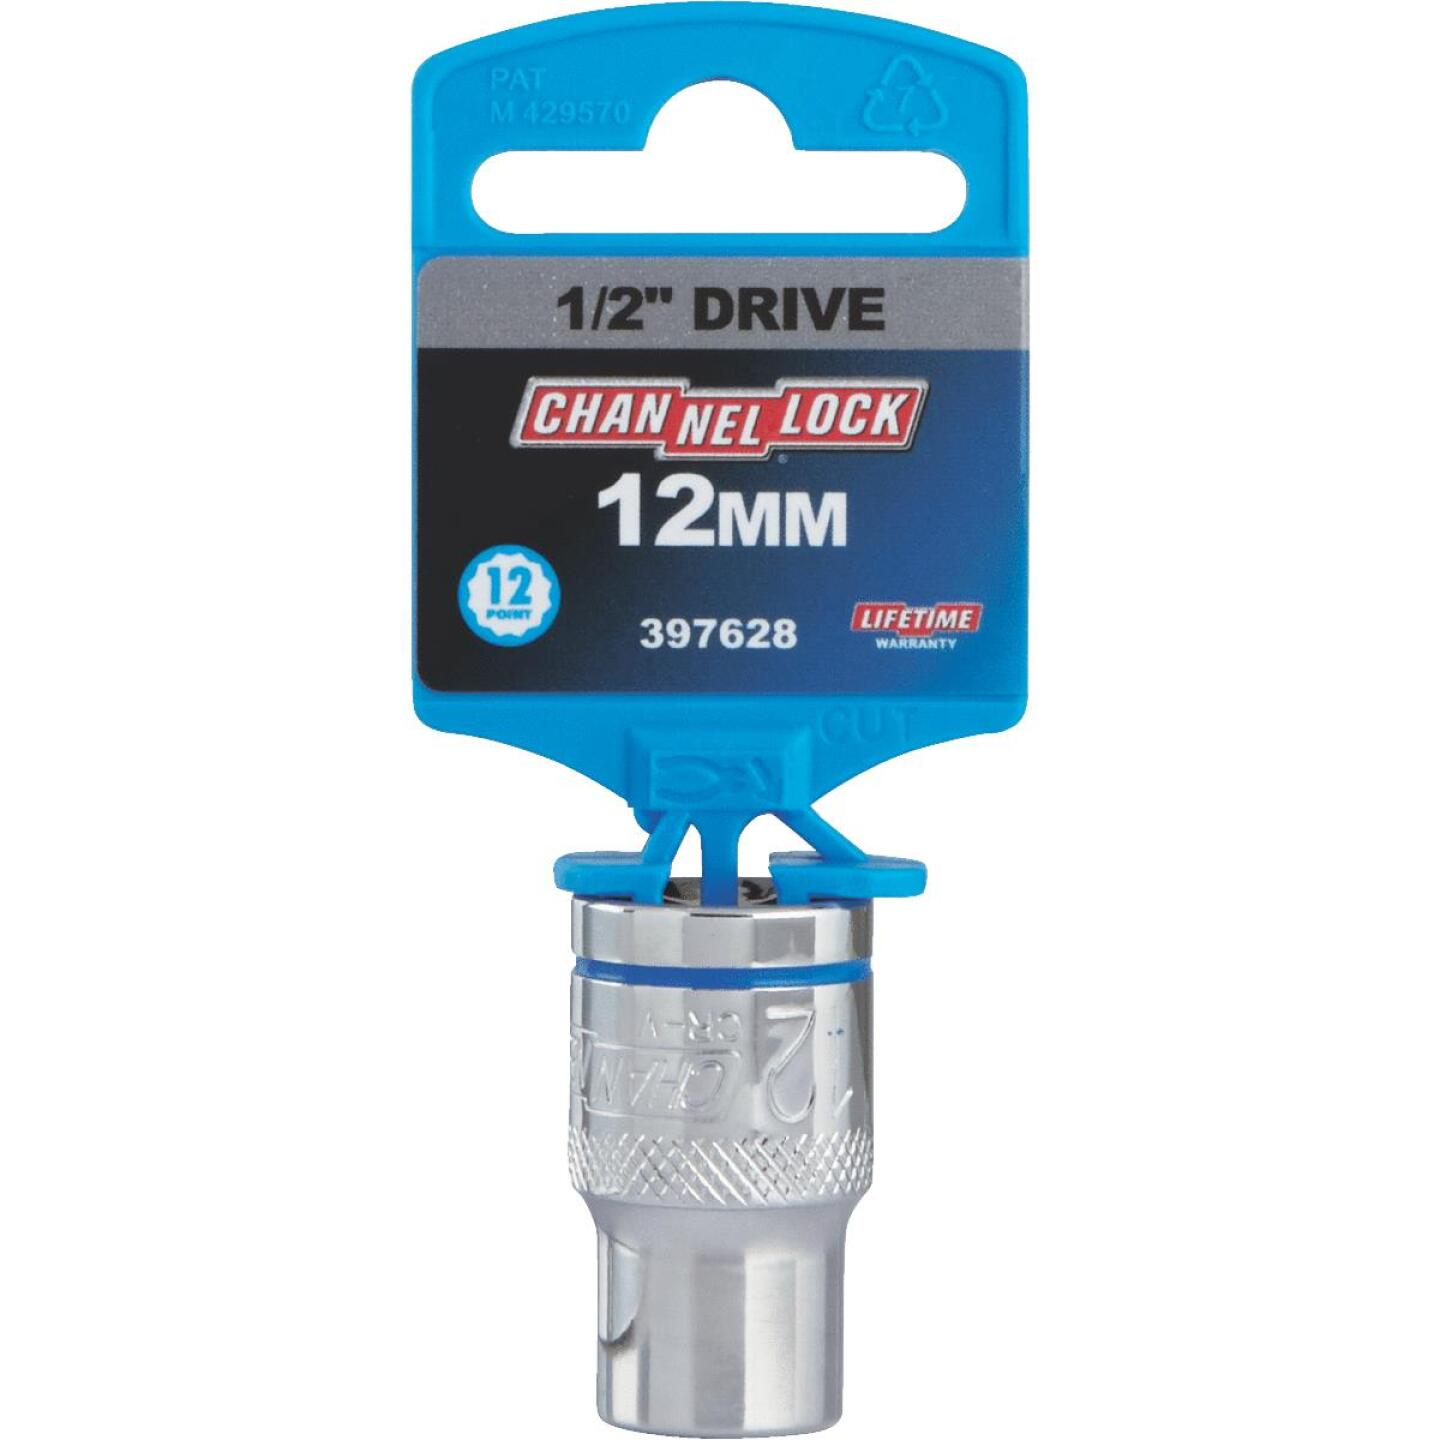 Channellock 1/2 In. Drive 12 mm 12-Point Shallow Metric Socket Image 2